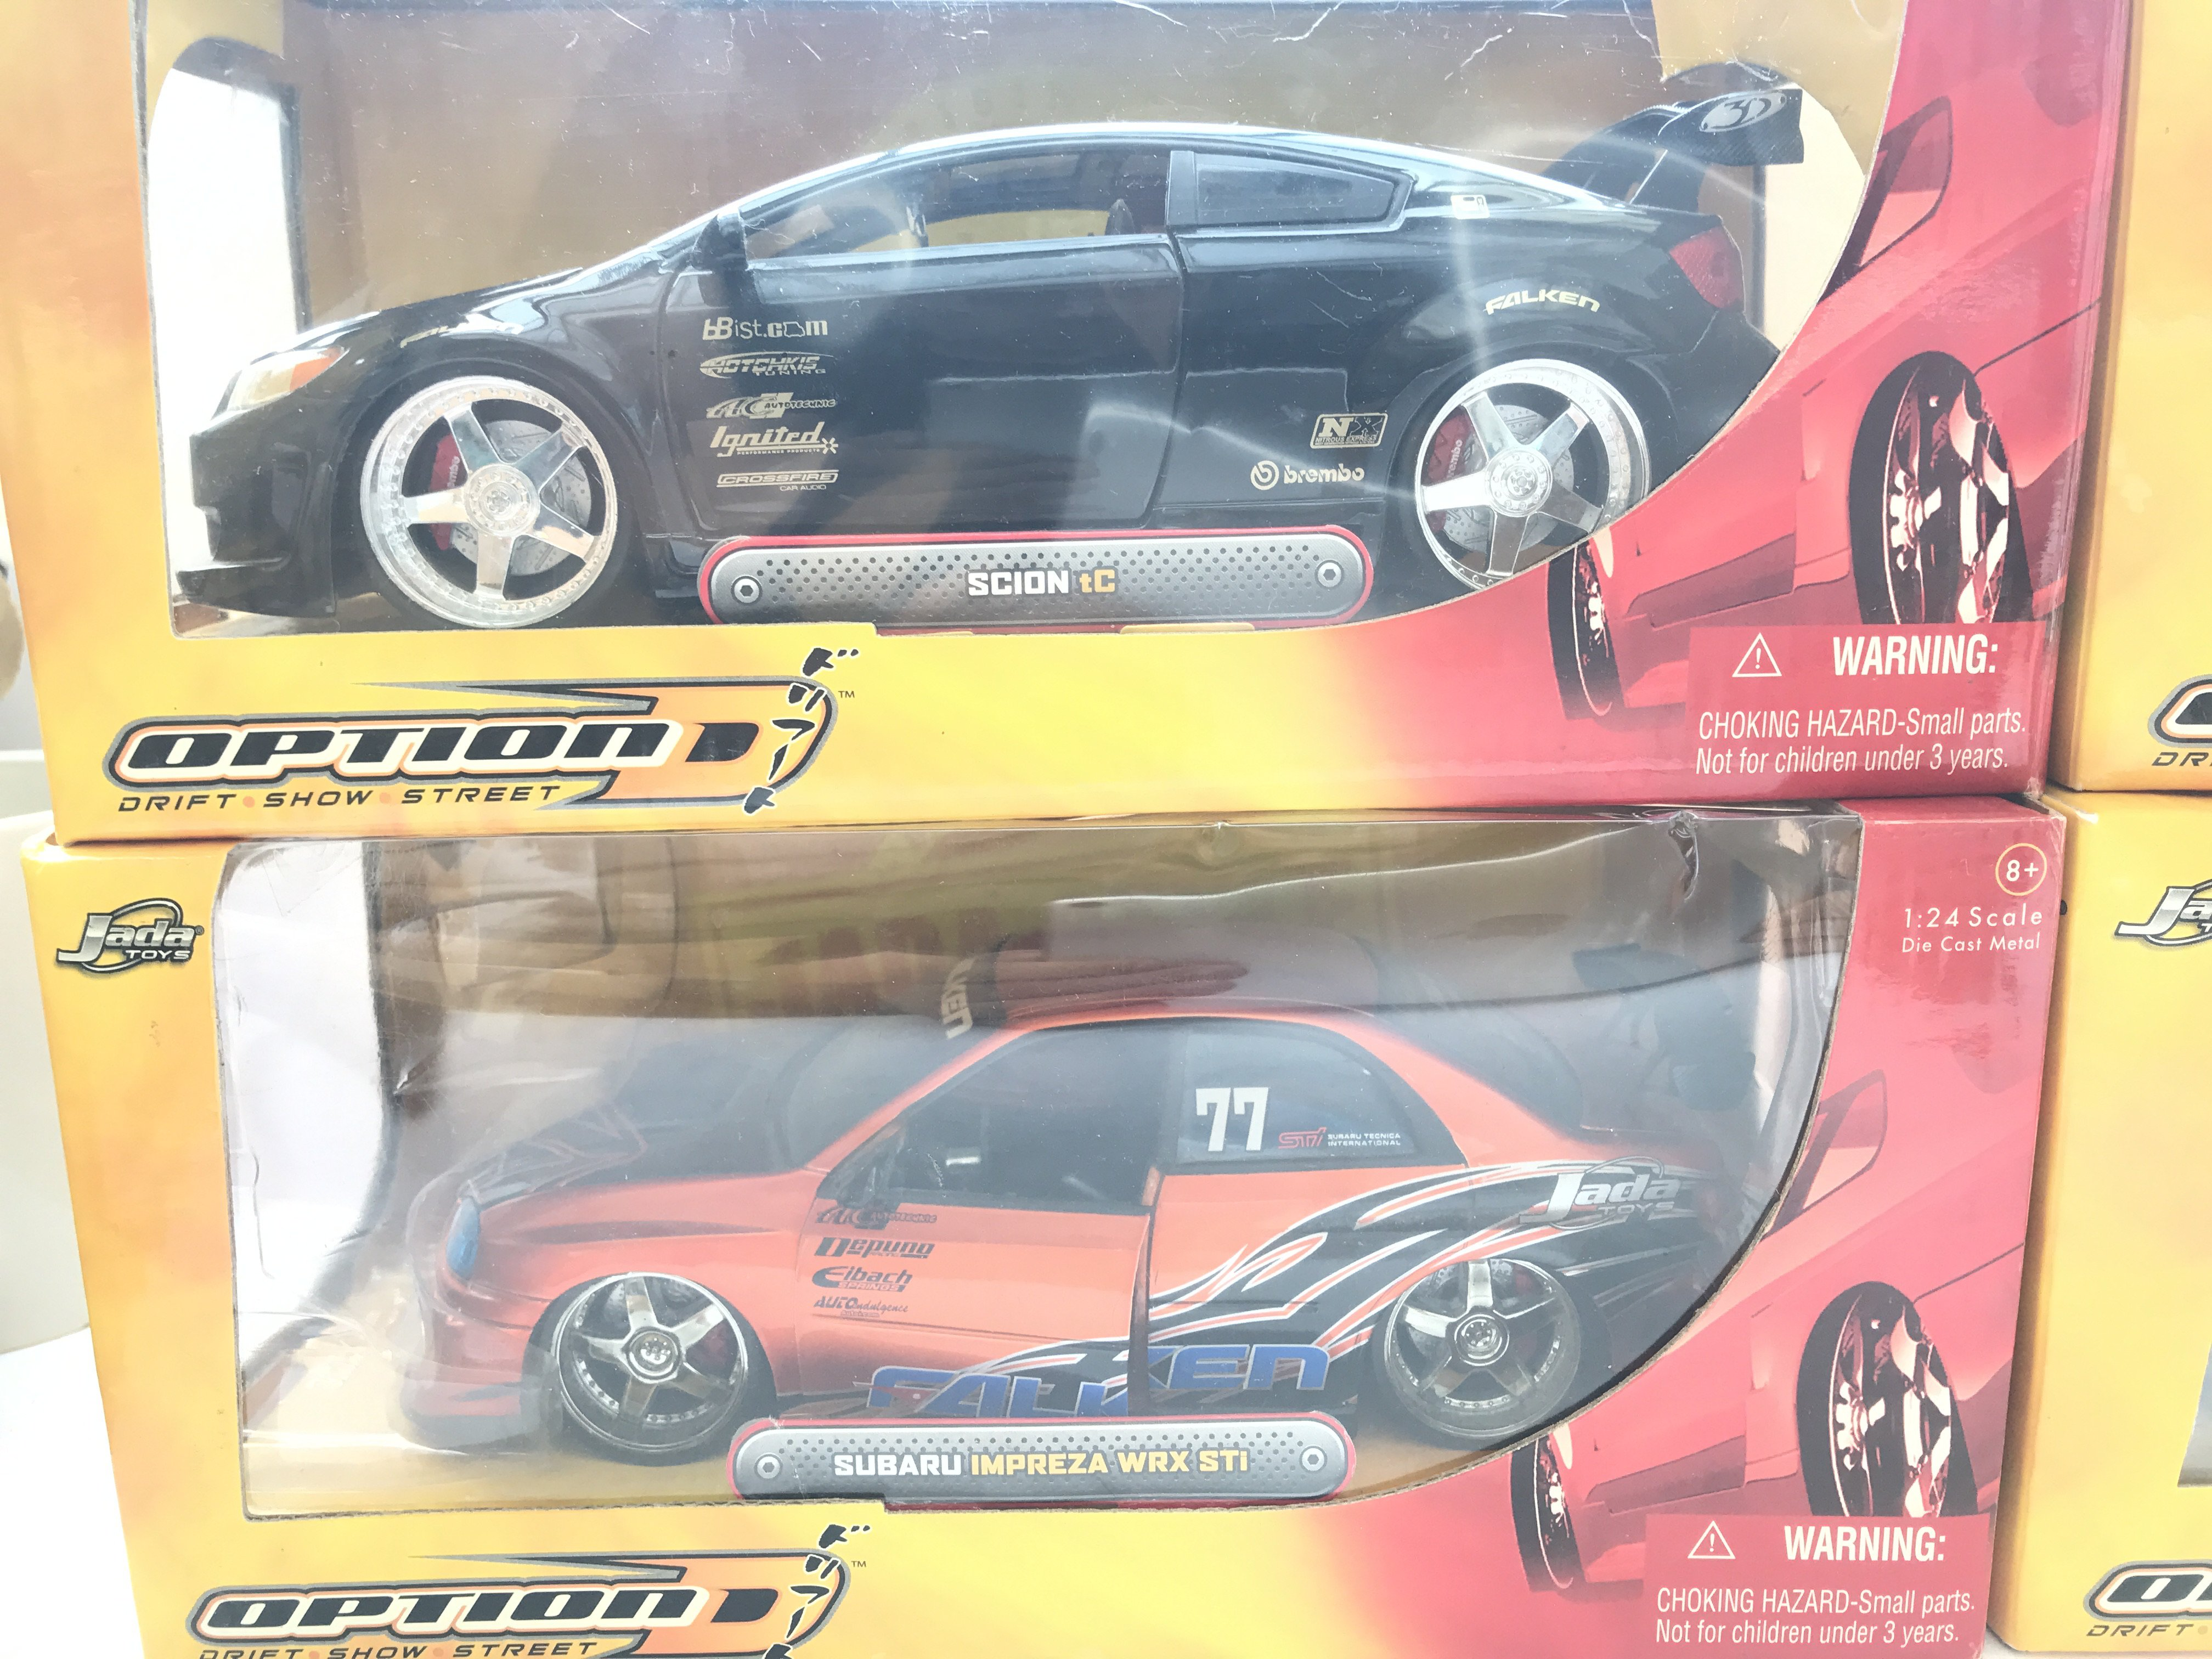 4 X Jada Toys Boxed Cars Scale 1:24 including Scio - Image 2 of 3